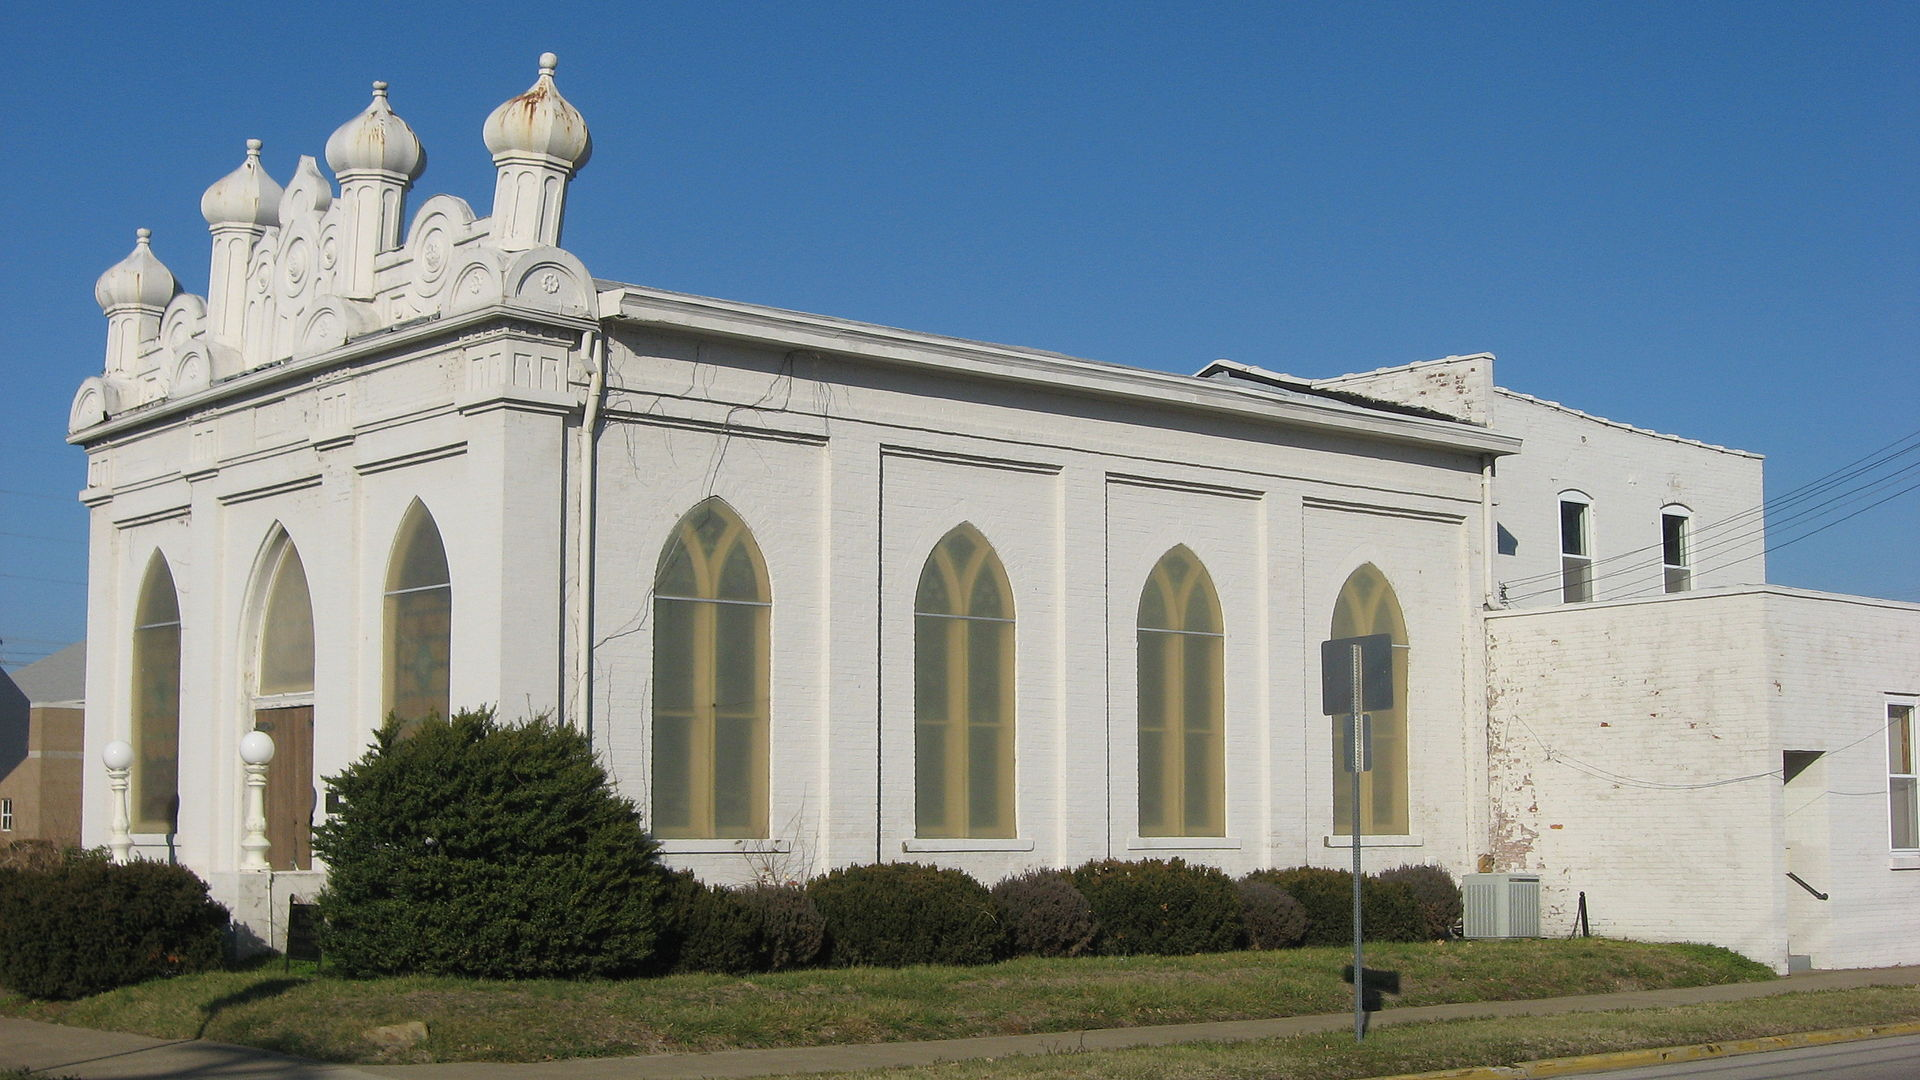 Temple Adath Israel was founded in 1858. The temple was built in 1878.